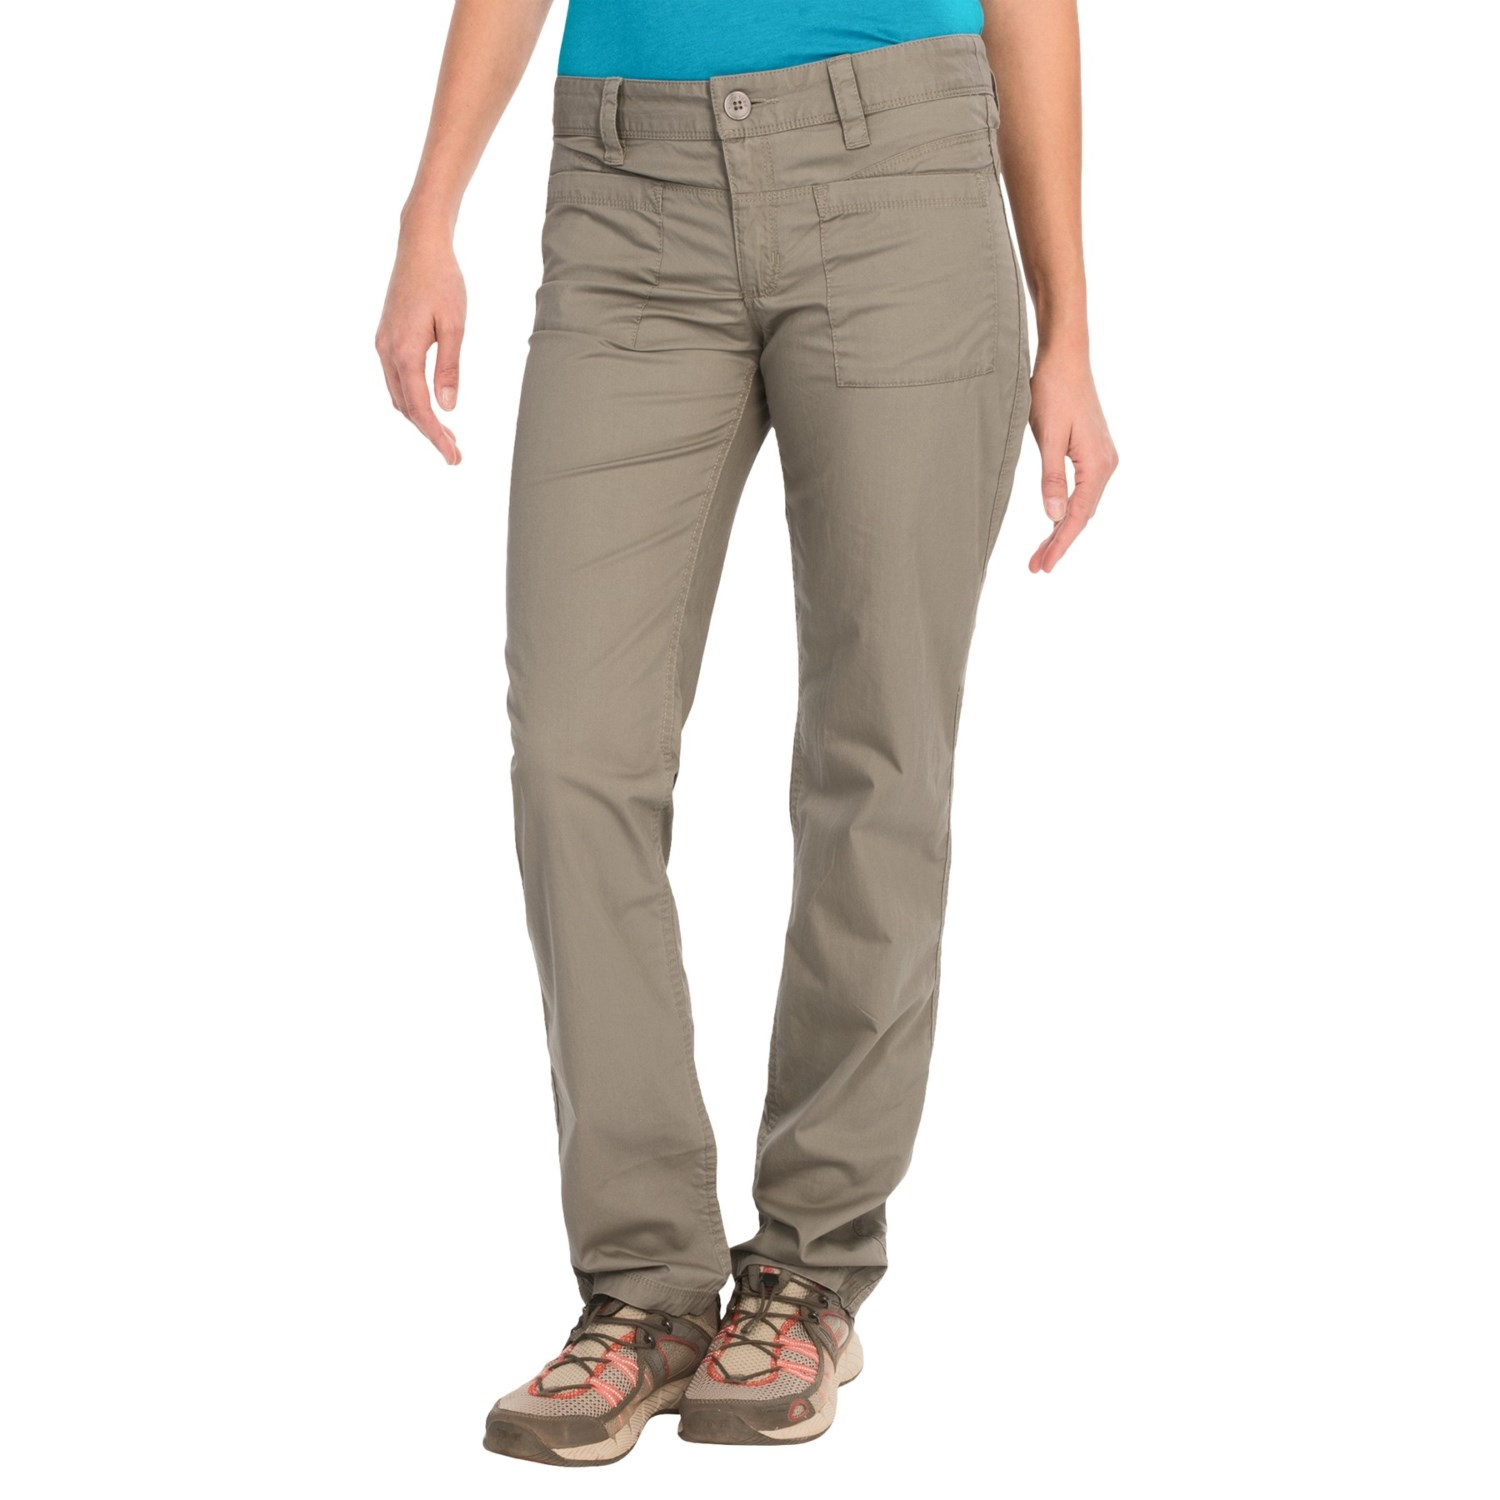 Fantastic Trendy Cargo Pants For Women  Lifestyle Fashion